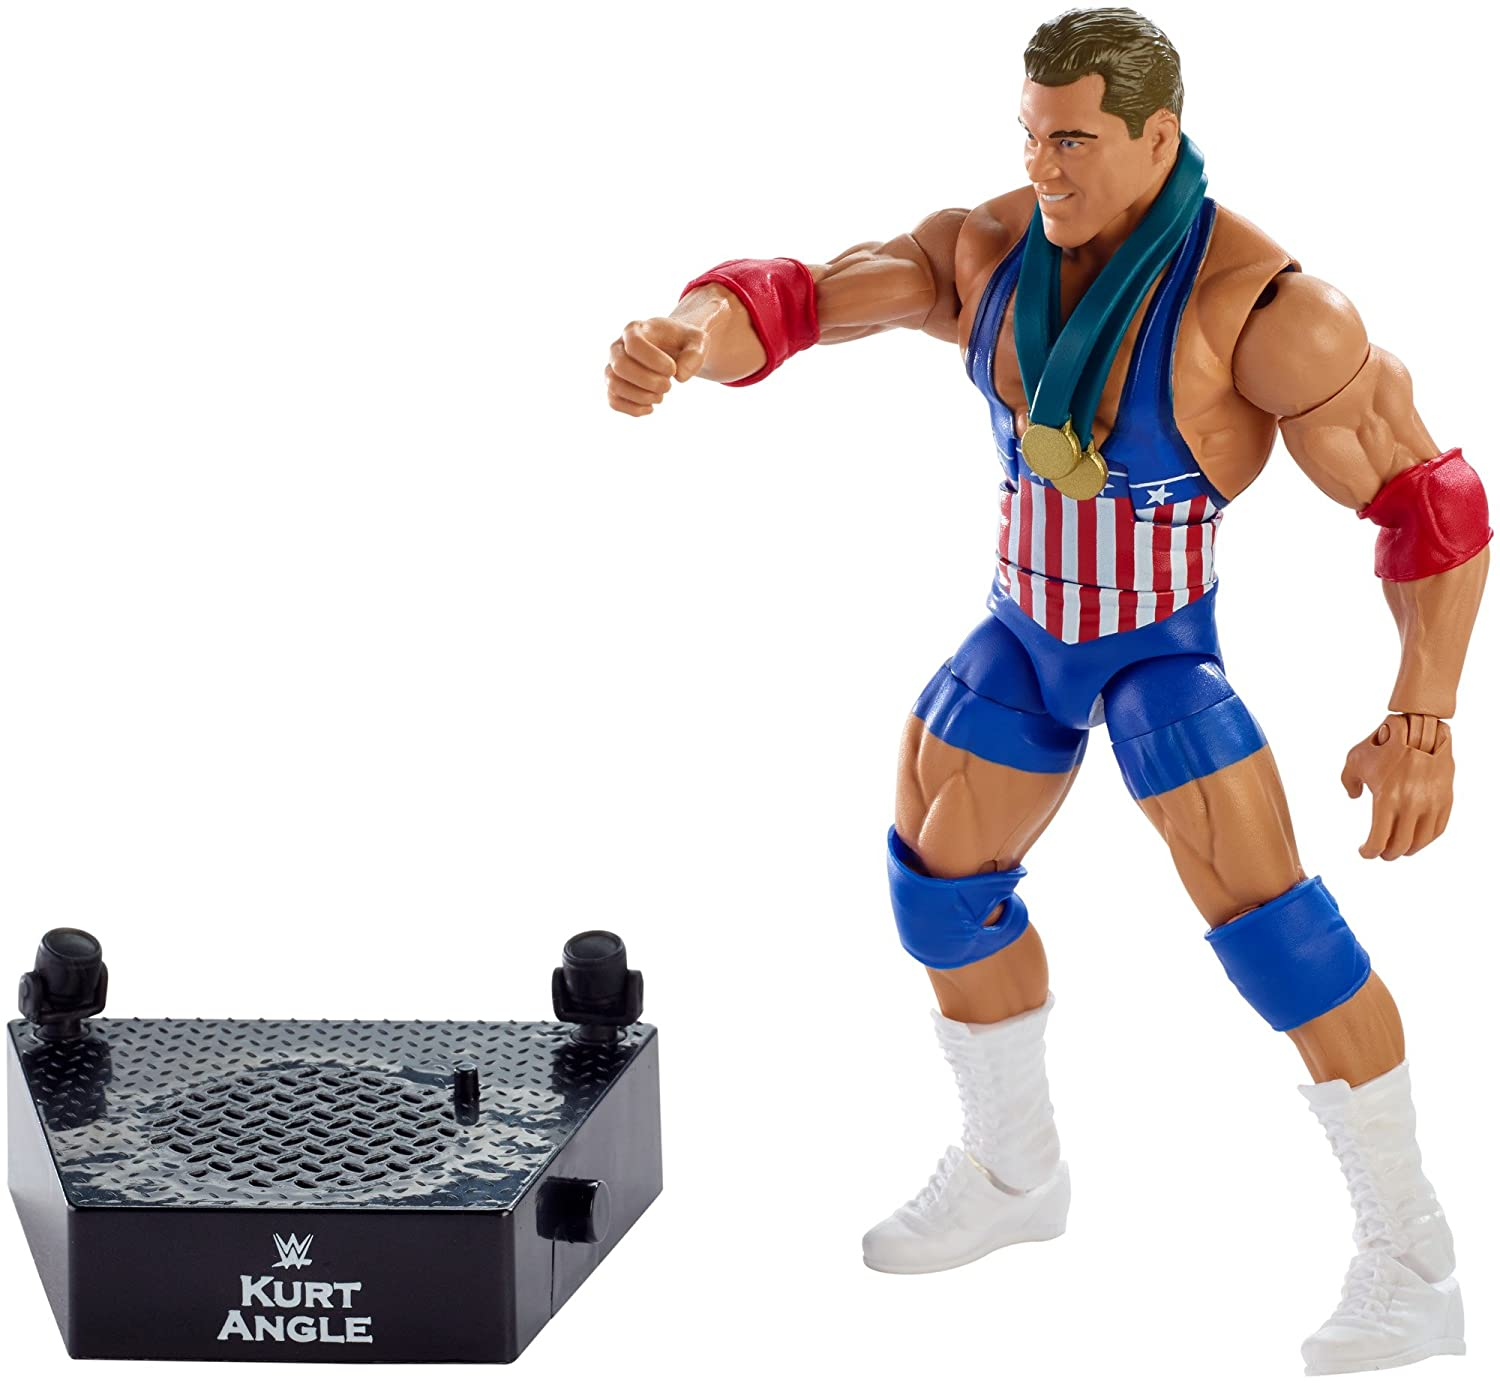 WWE Entrance Greats Kurt Angle Action Figure